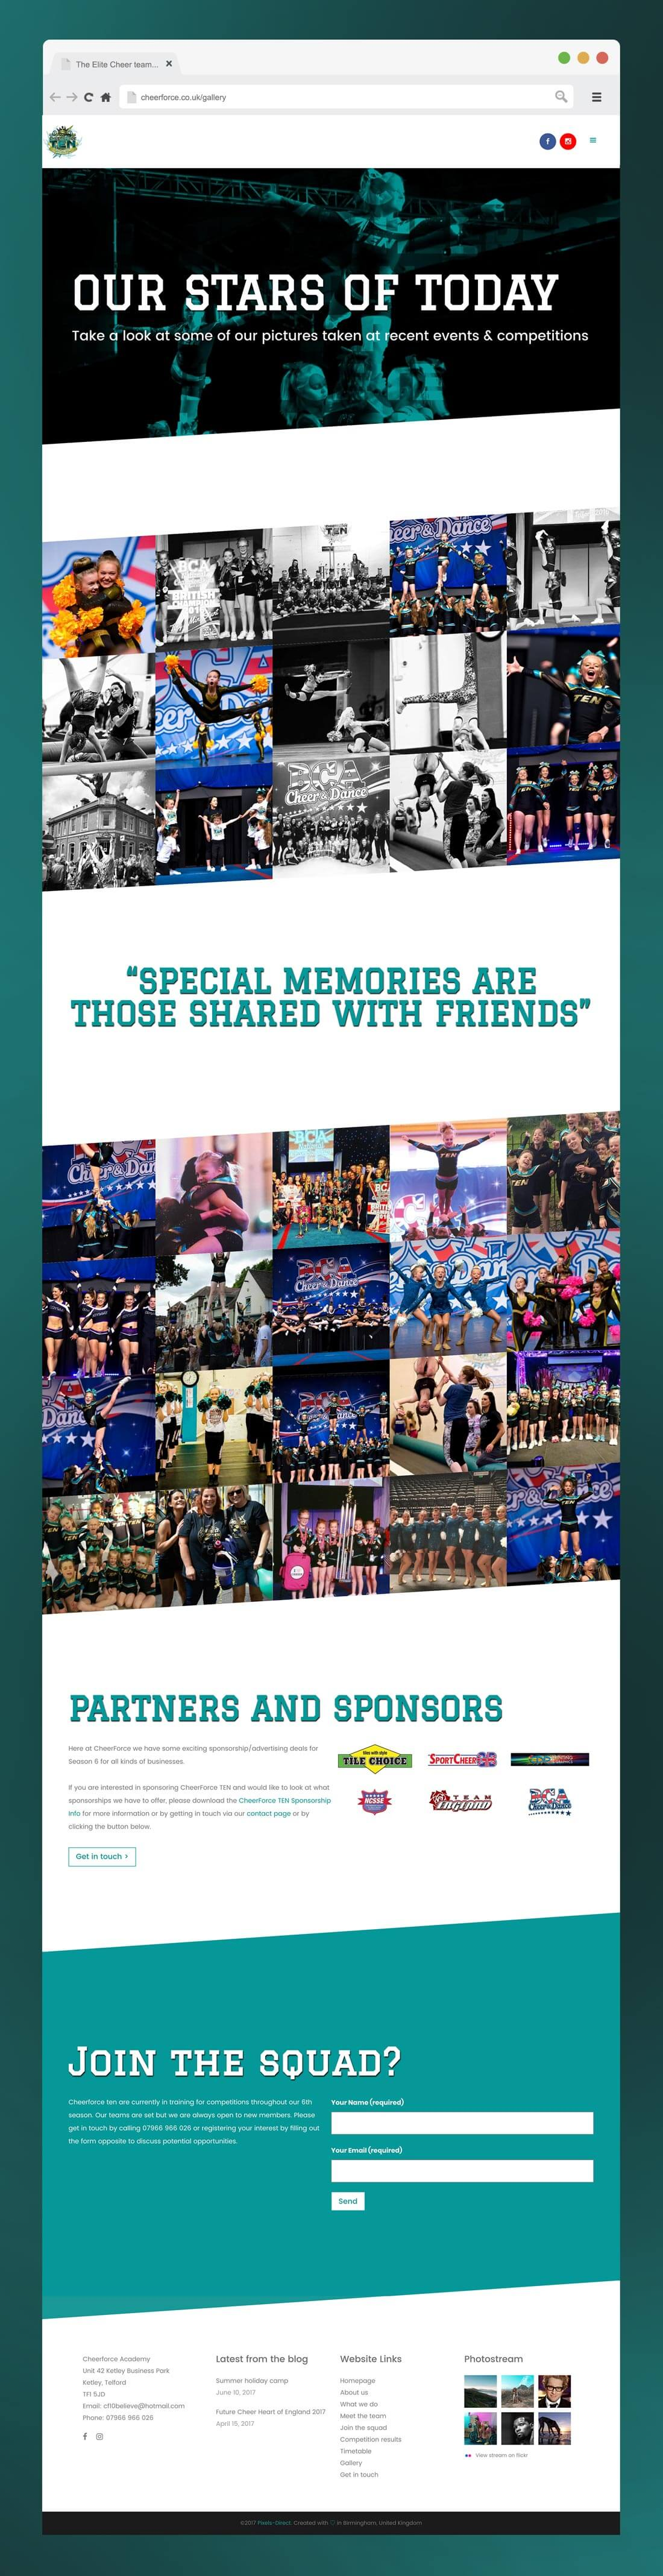 Image of Cheerforce TEN's gallery page on their website